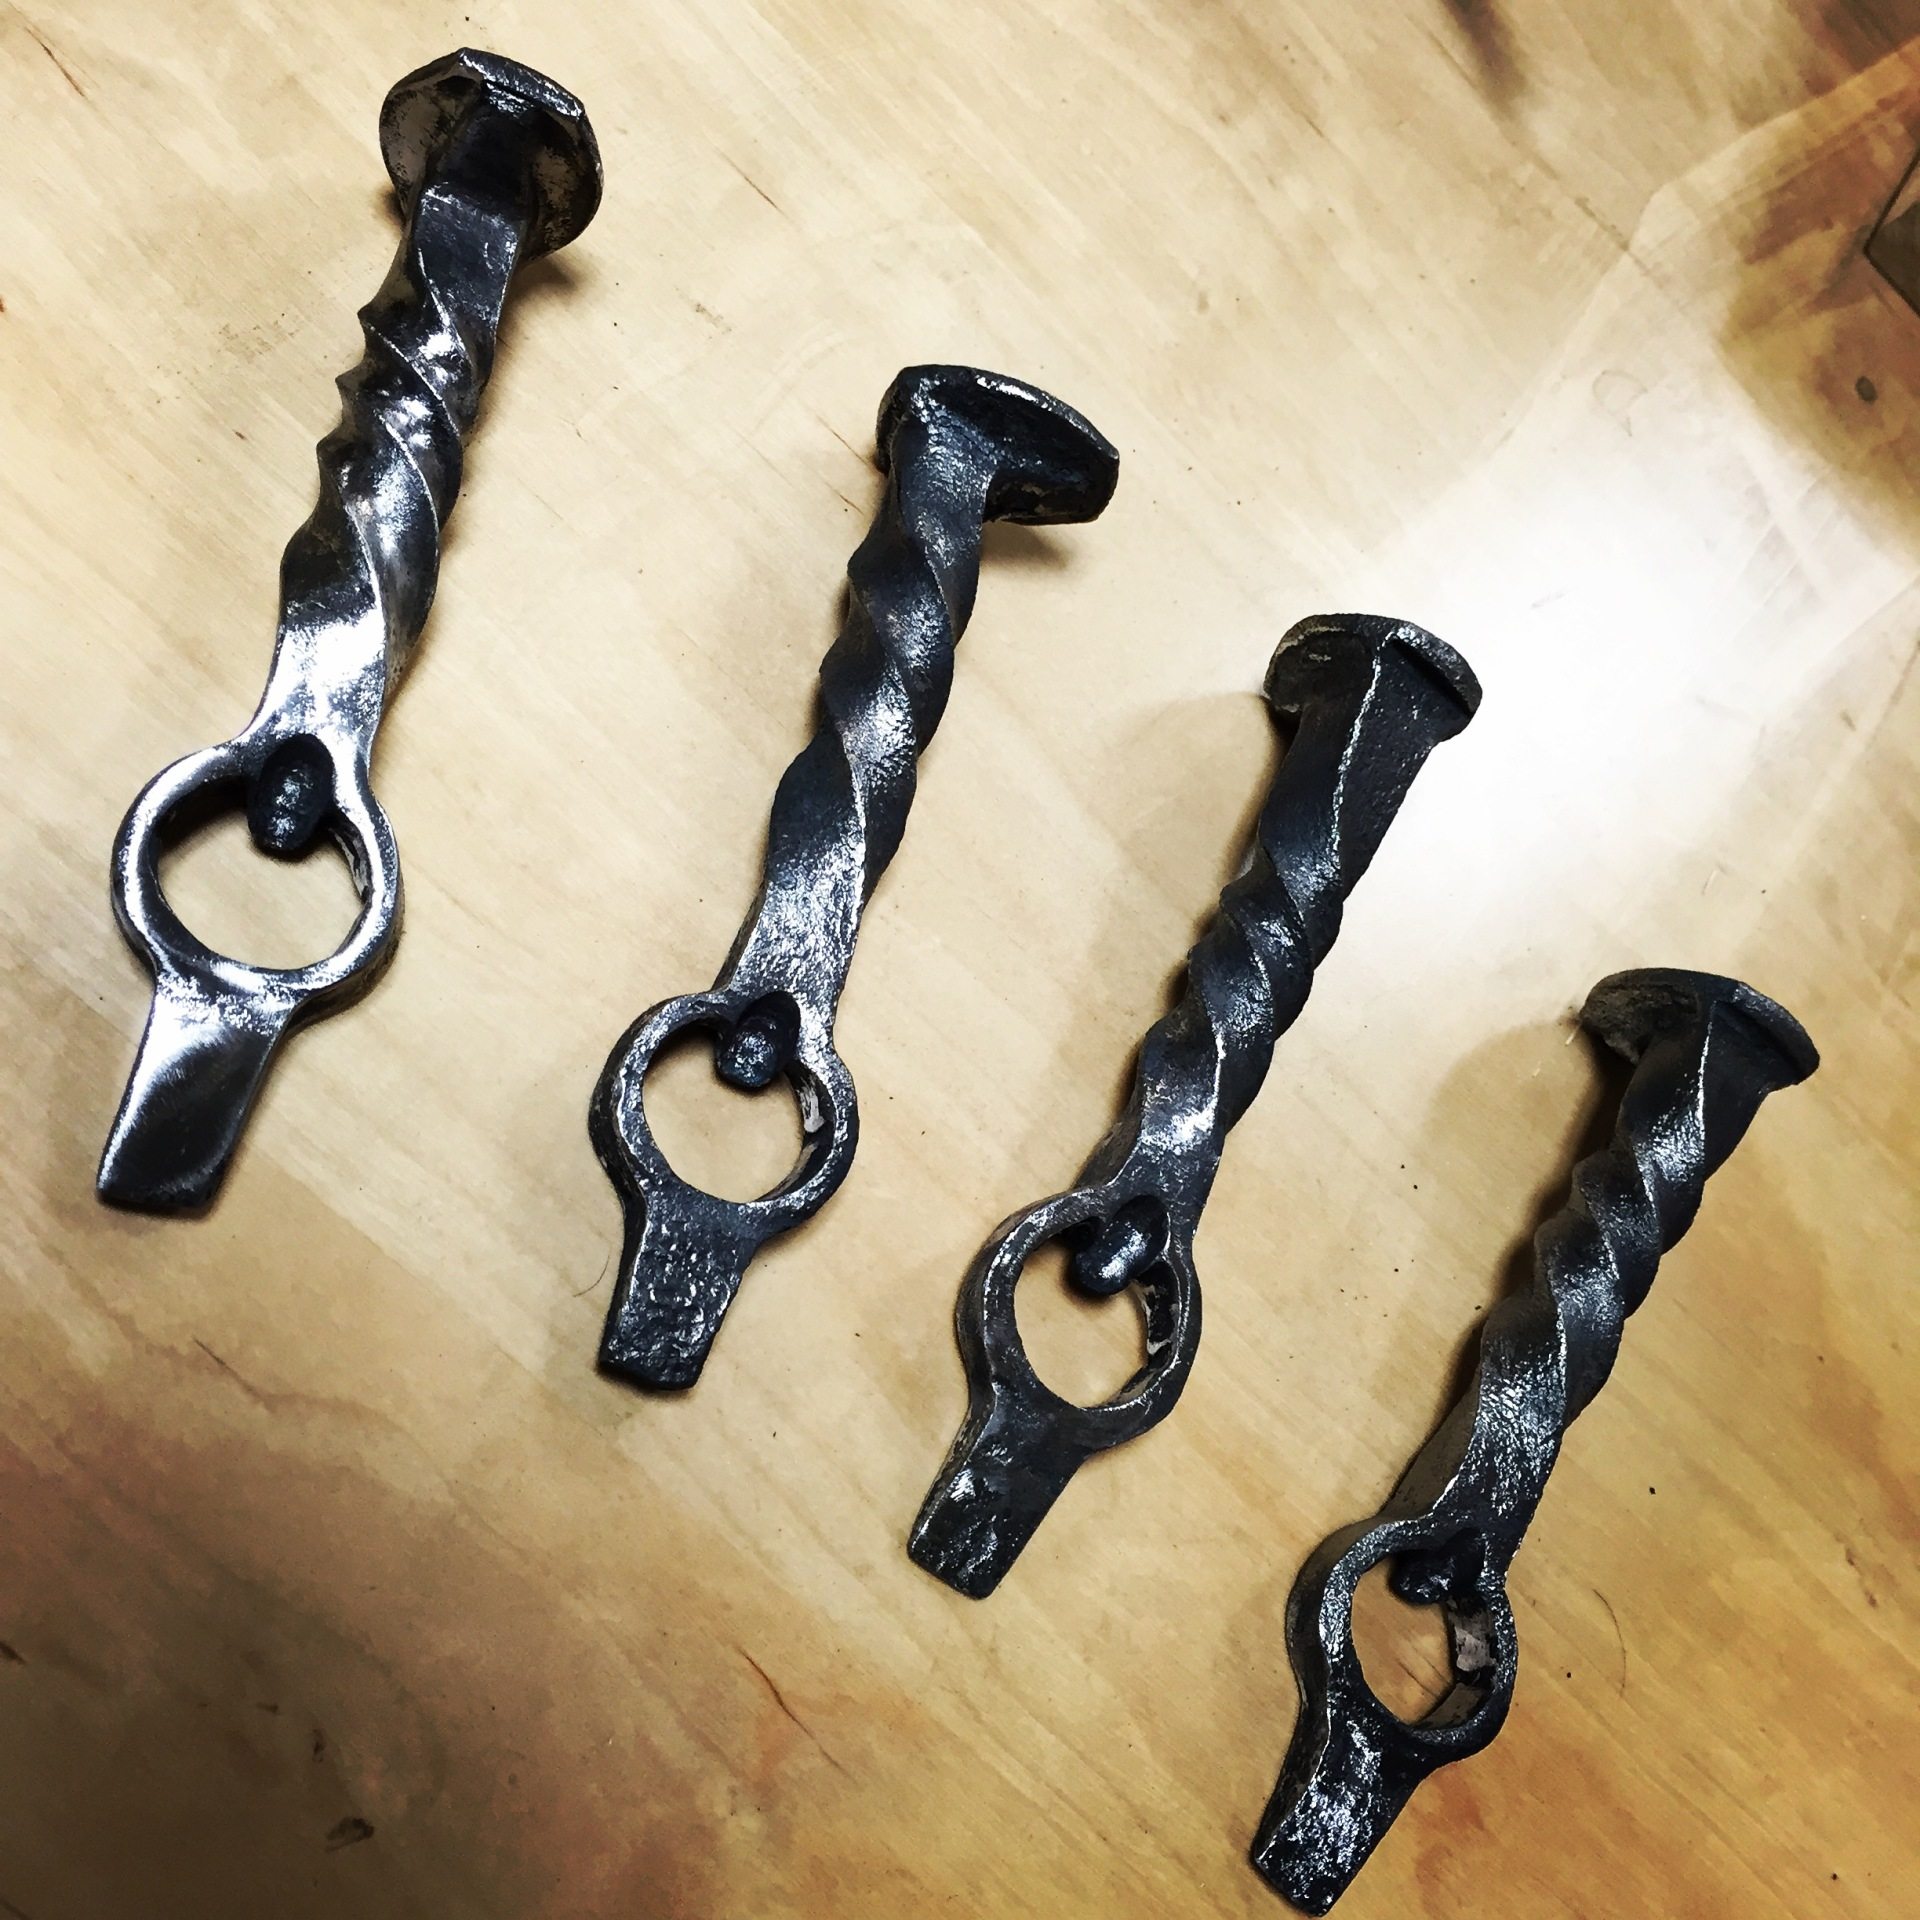 Finished products: Railroad spike bottle openers